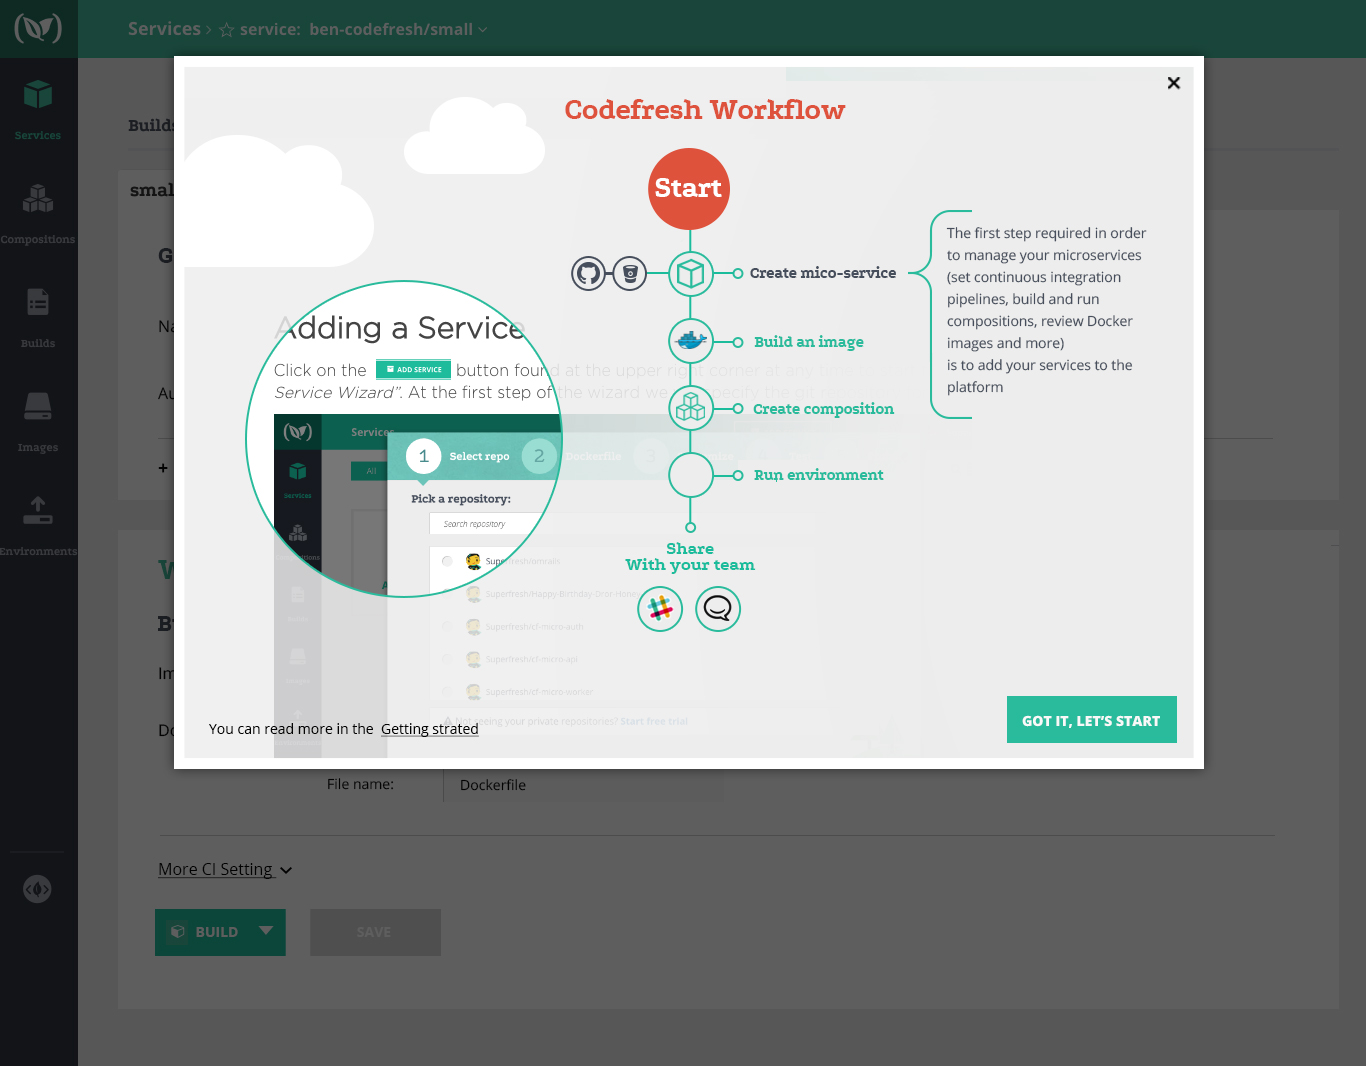 codefresh_Workflow002+